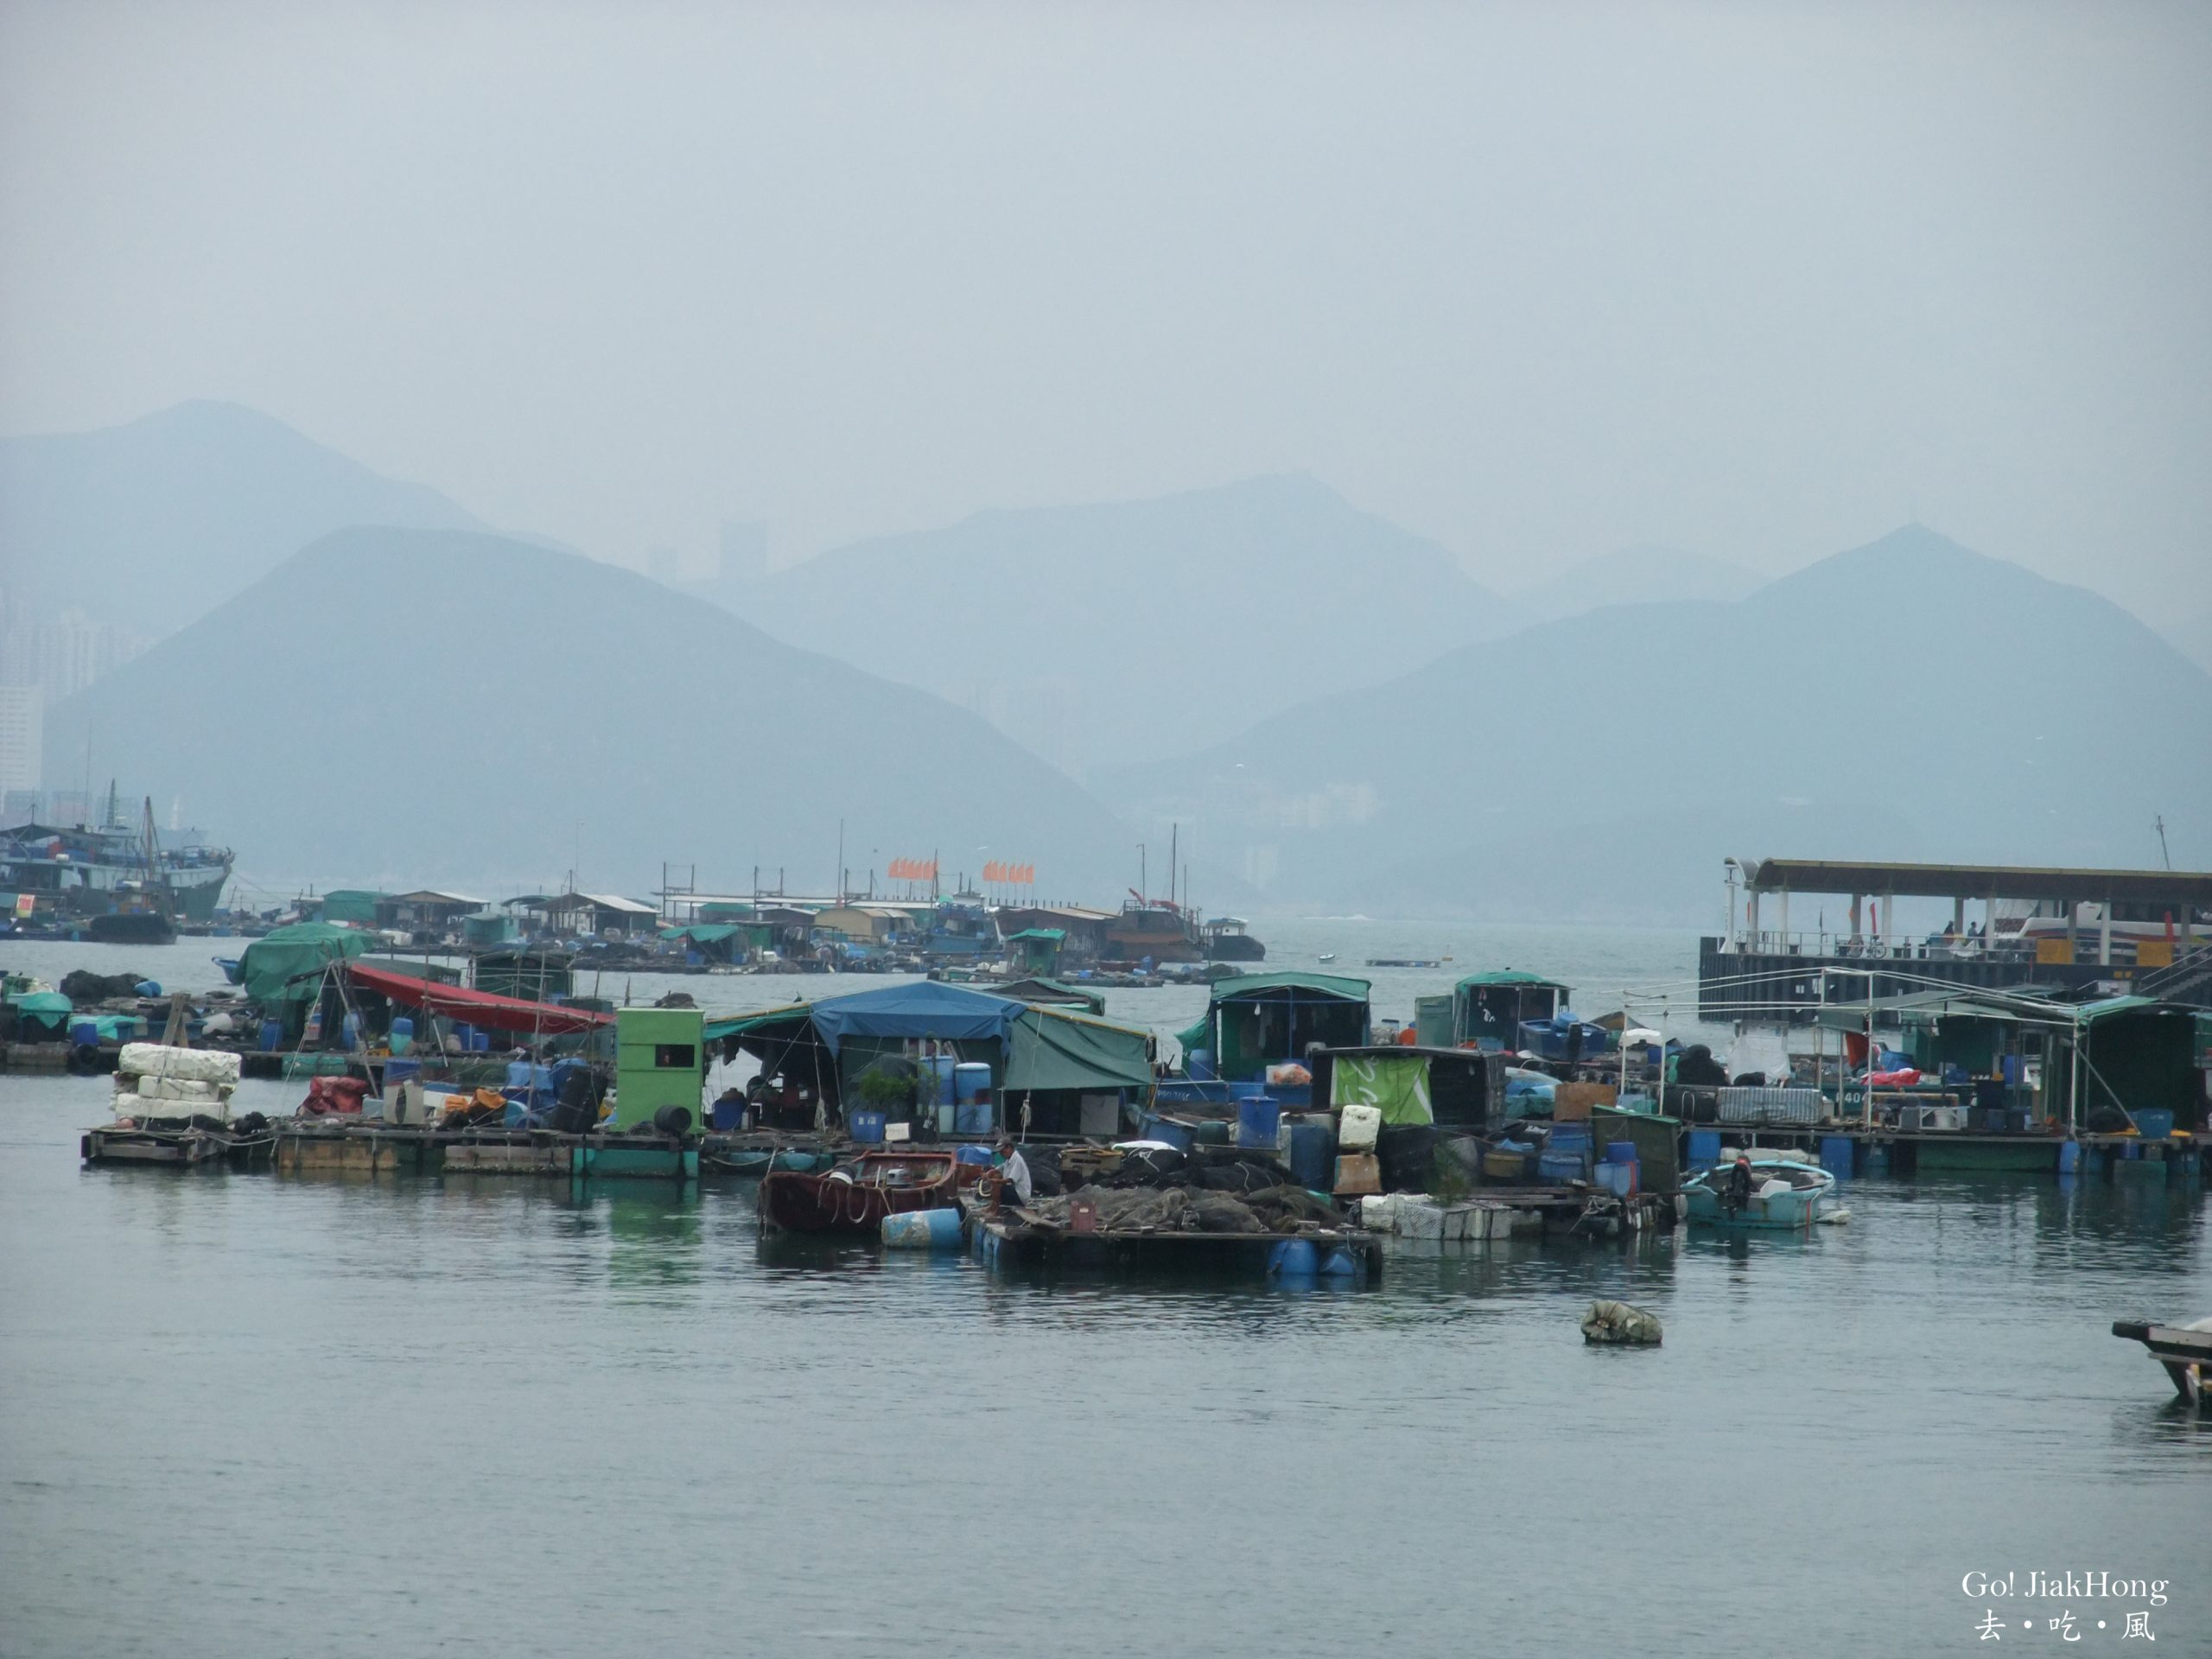 [See, Eat] Hong Kong- One Day out of Hong Kong City to Lamma Island (南丫島)